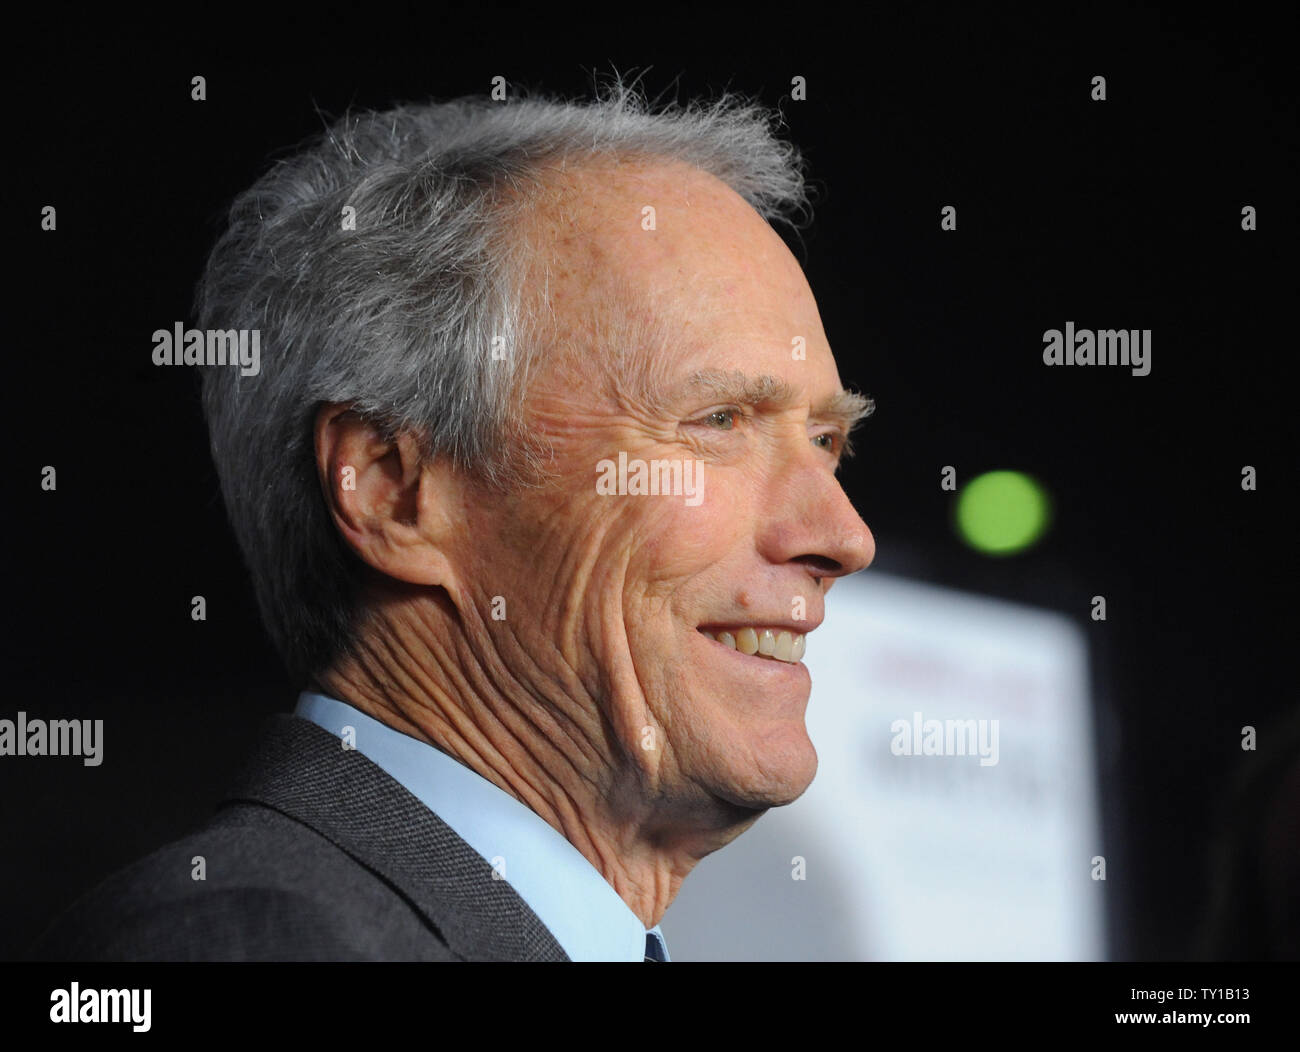 """Director Clint Eastwood attends the premiere of his new biographic drama motion picture """"Invictus"""" in Beverly Hills, California on December 3, 2009. Morgan Freeman portrays Nelson Mandela, in his first term as the South African President, initiates a unique venture to unite the apartheid-torn land: enlist the national rugby team on a mission to win the 1995 Rugby World Cup.     UPI/Jim Ruymen Stock Photo"""